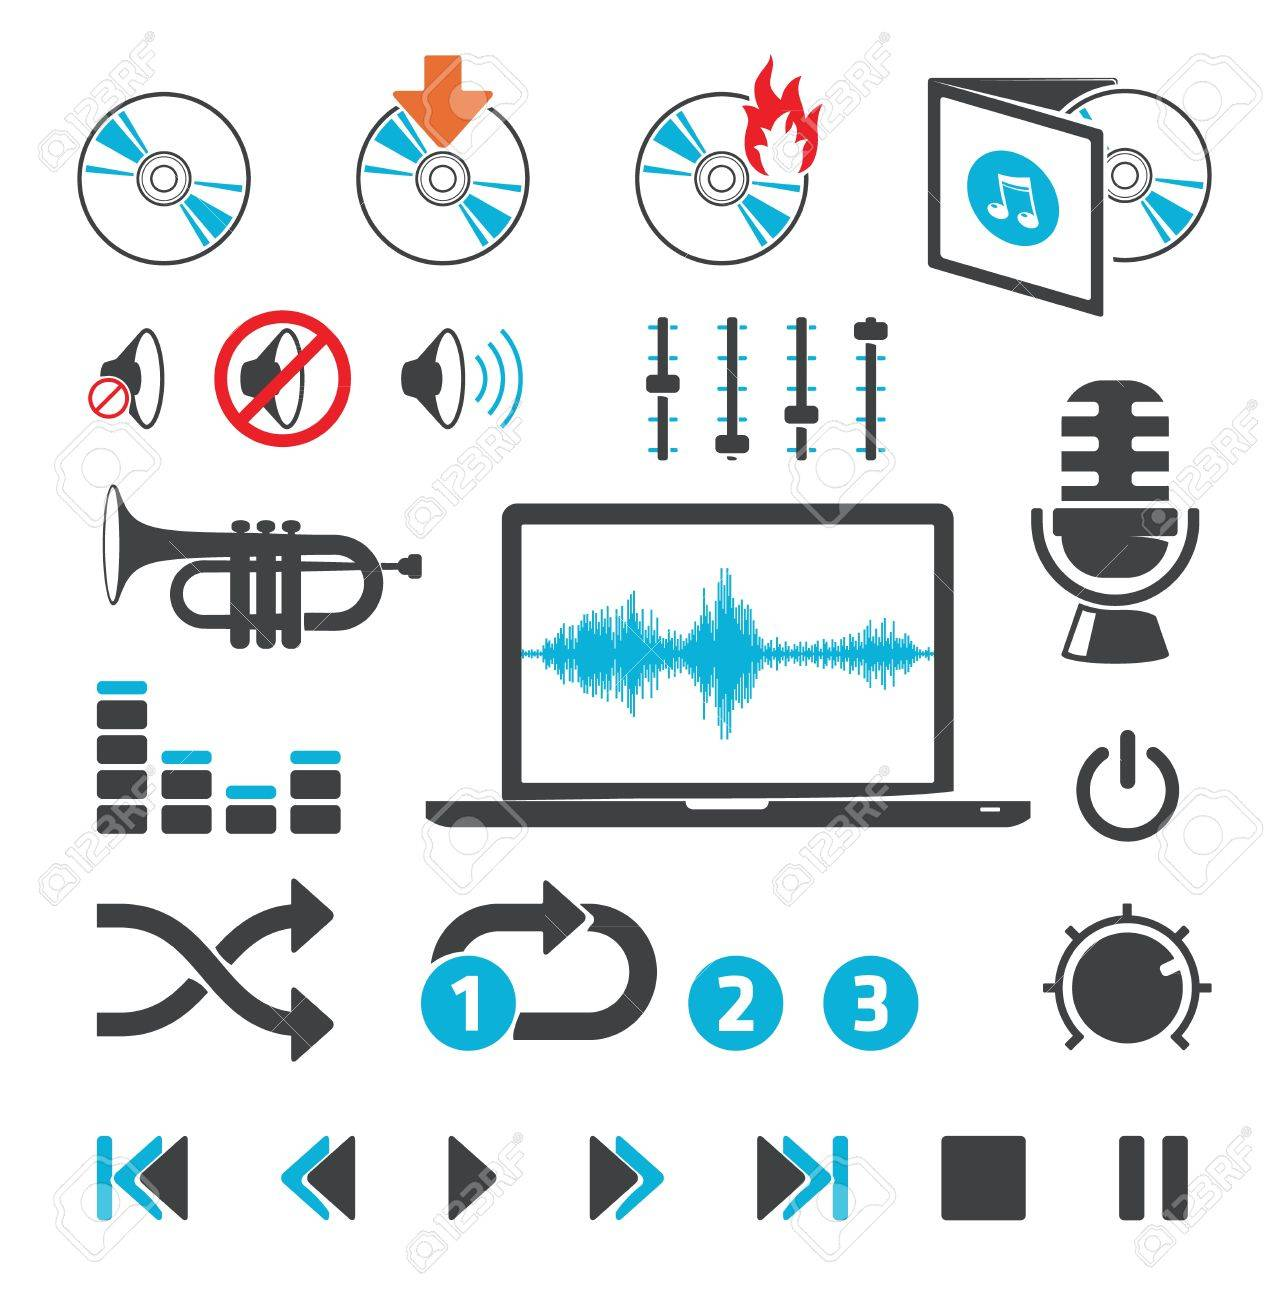 Audio-video computer icons and signs - 12711035